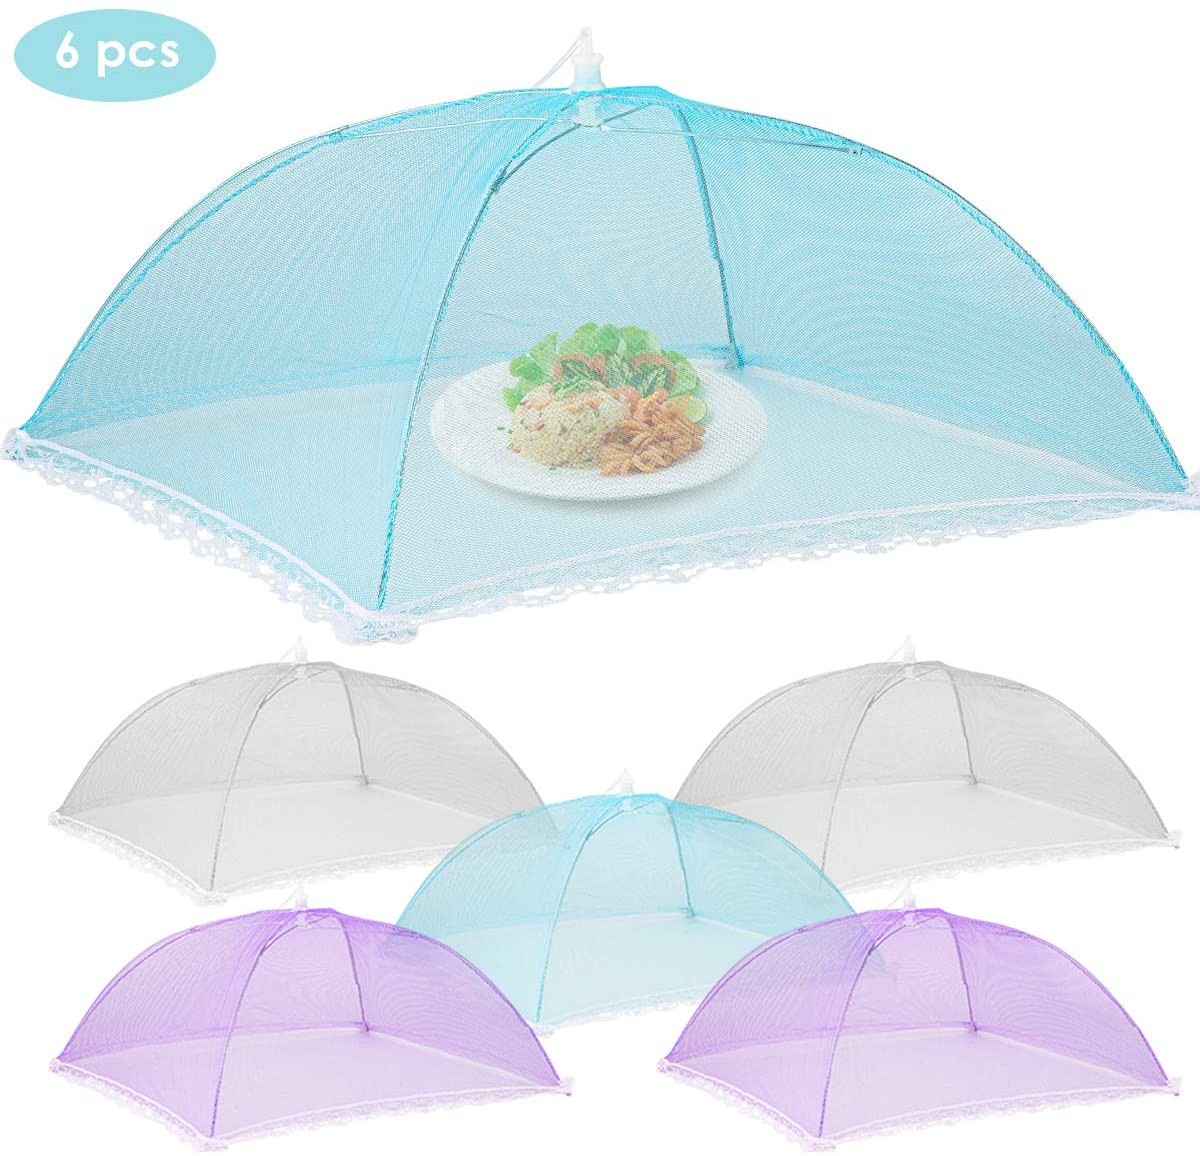 SOONHUA Pop-Up Mesh Food Covers, 6Pcs Mesh Food Covers 17in x 17in Collapsible Outdoor Camping Picnic Food Tent Plates Cover Keep Out Flies Bugs